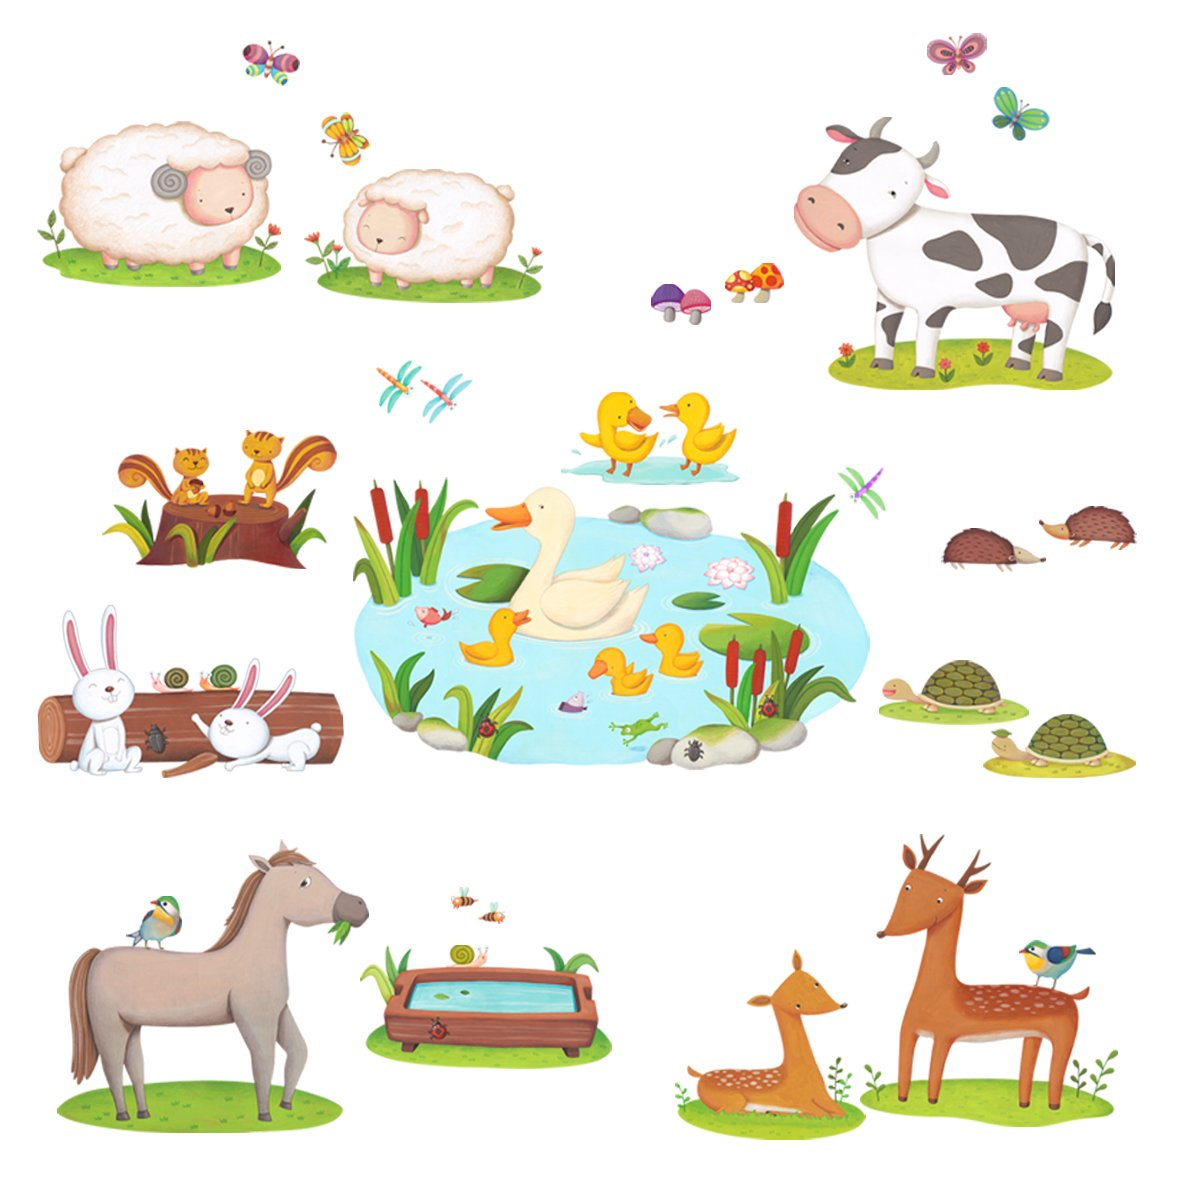 Decowall DW-1403 Field of Animals Kids Wall Stickers Wall Decals Peel and Stick Removable Wall Stickers for Kids Nursery Bedroom Living Room